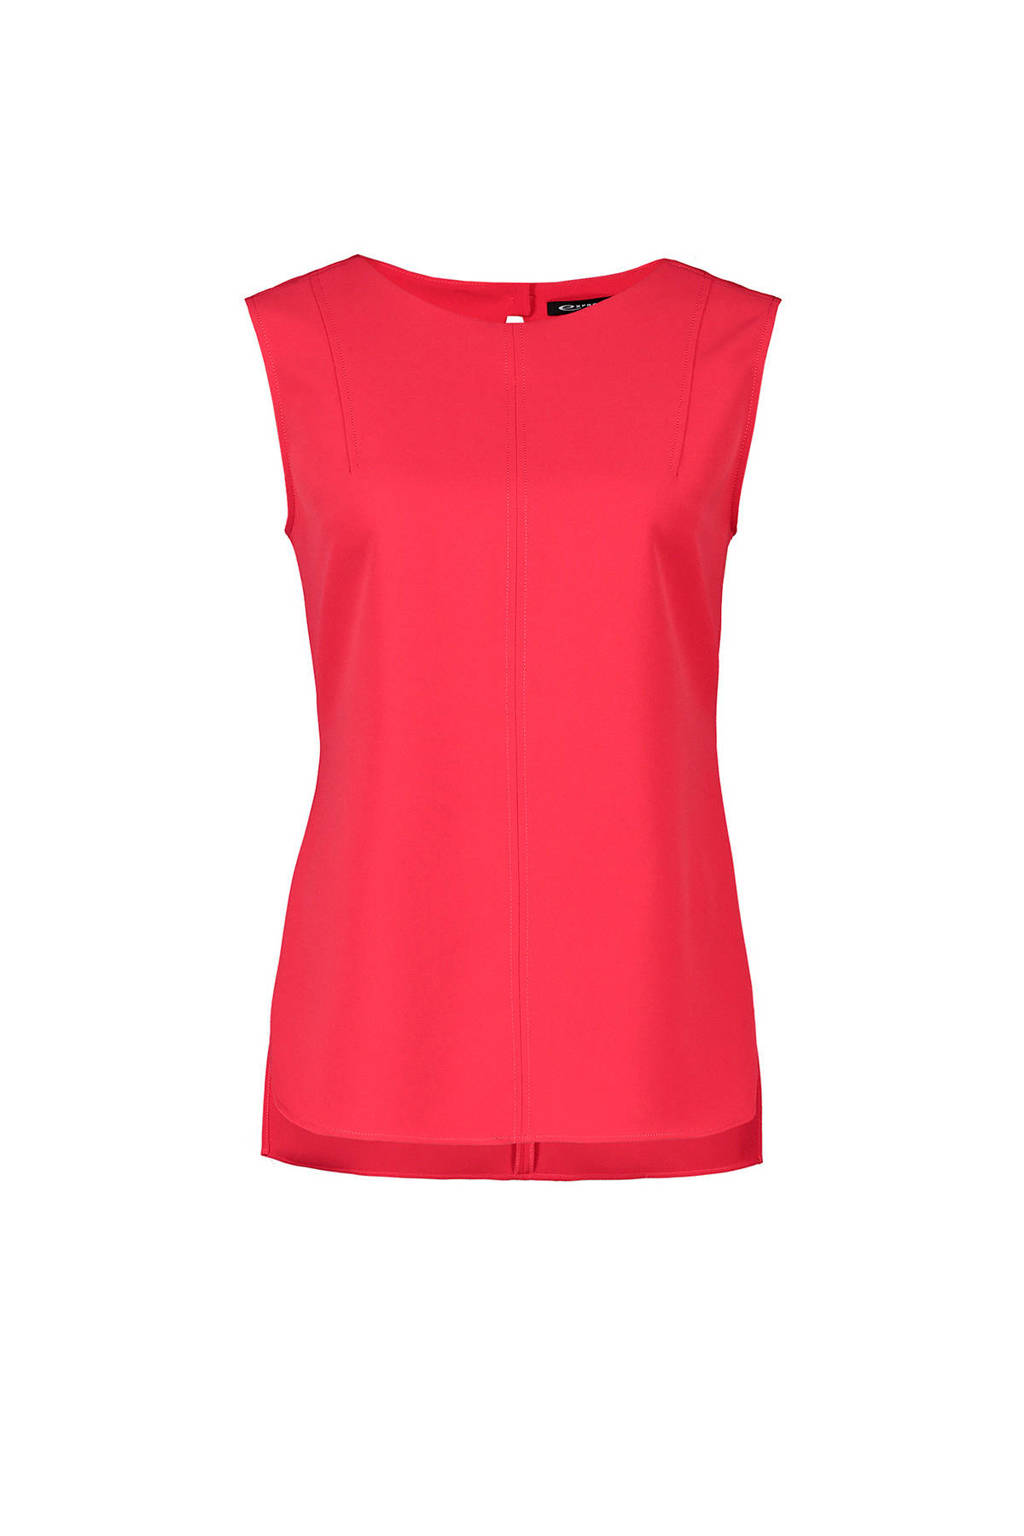 Expresso top Ebby, Rood